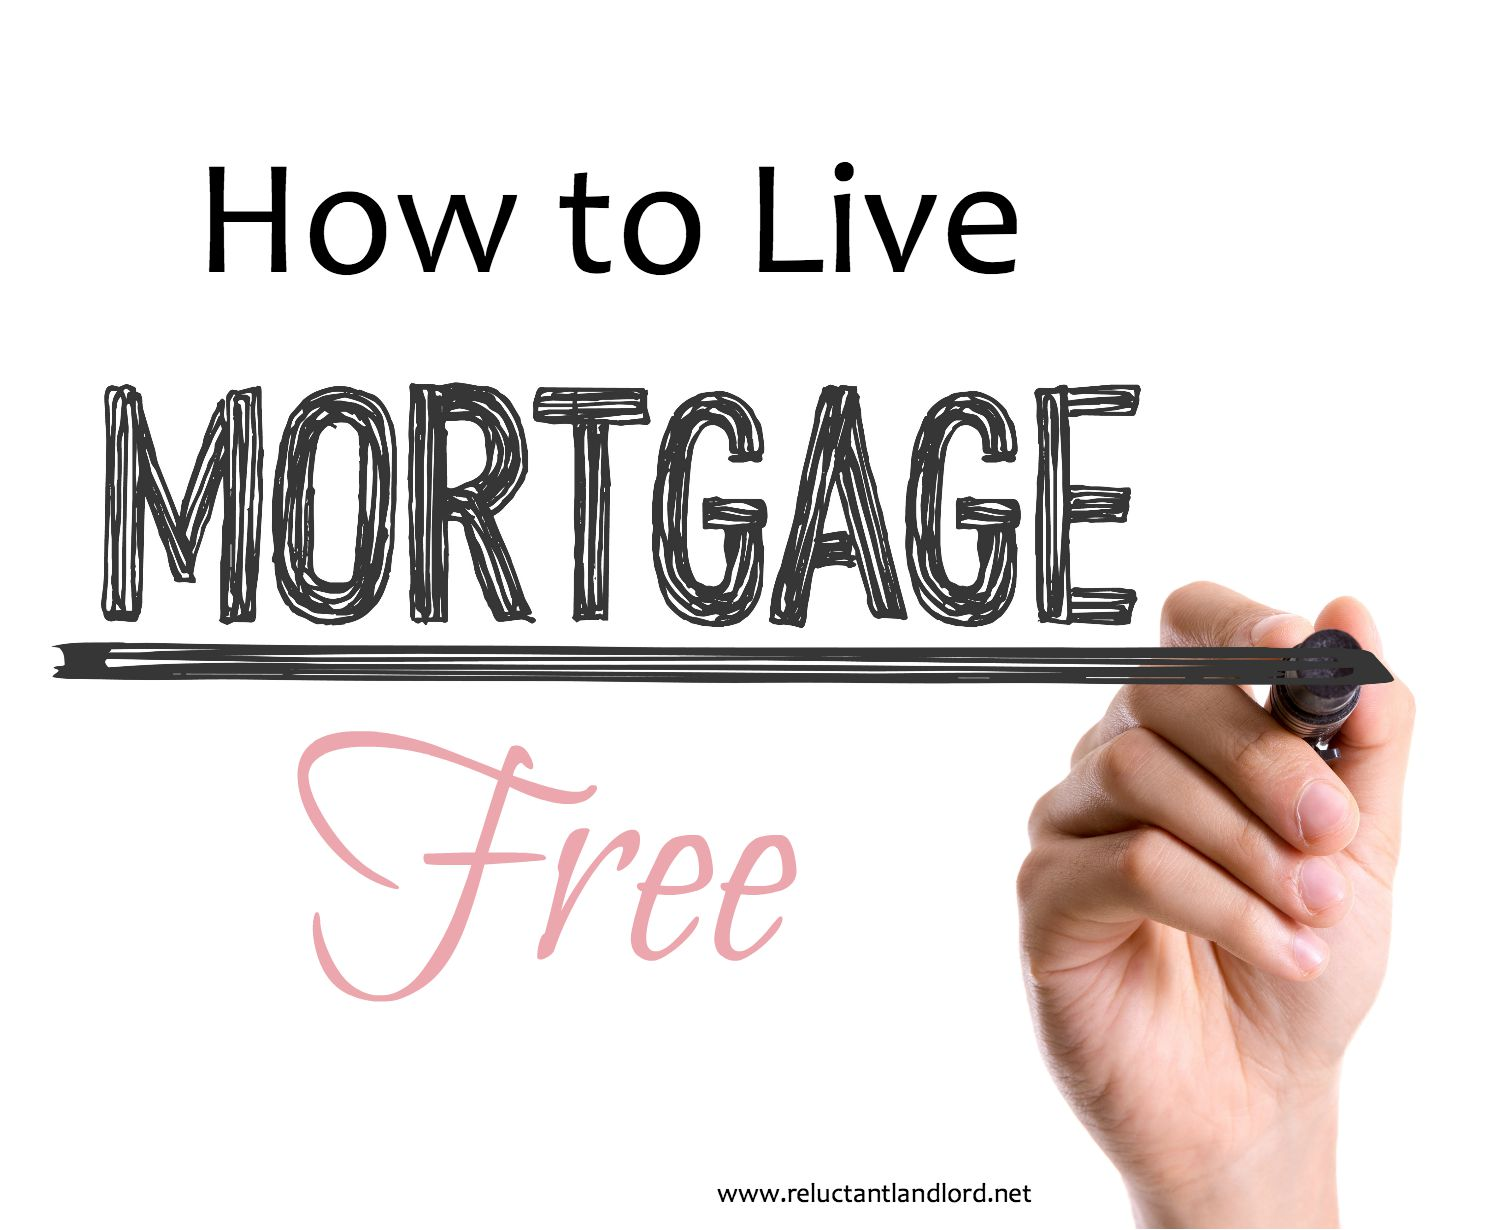 How To Live Mortgage Free The Reluctant Landlord